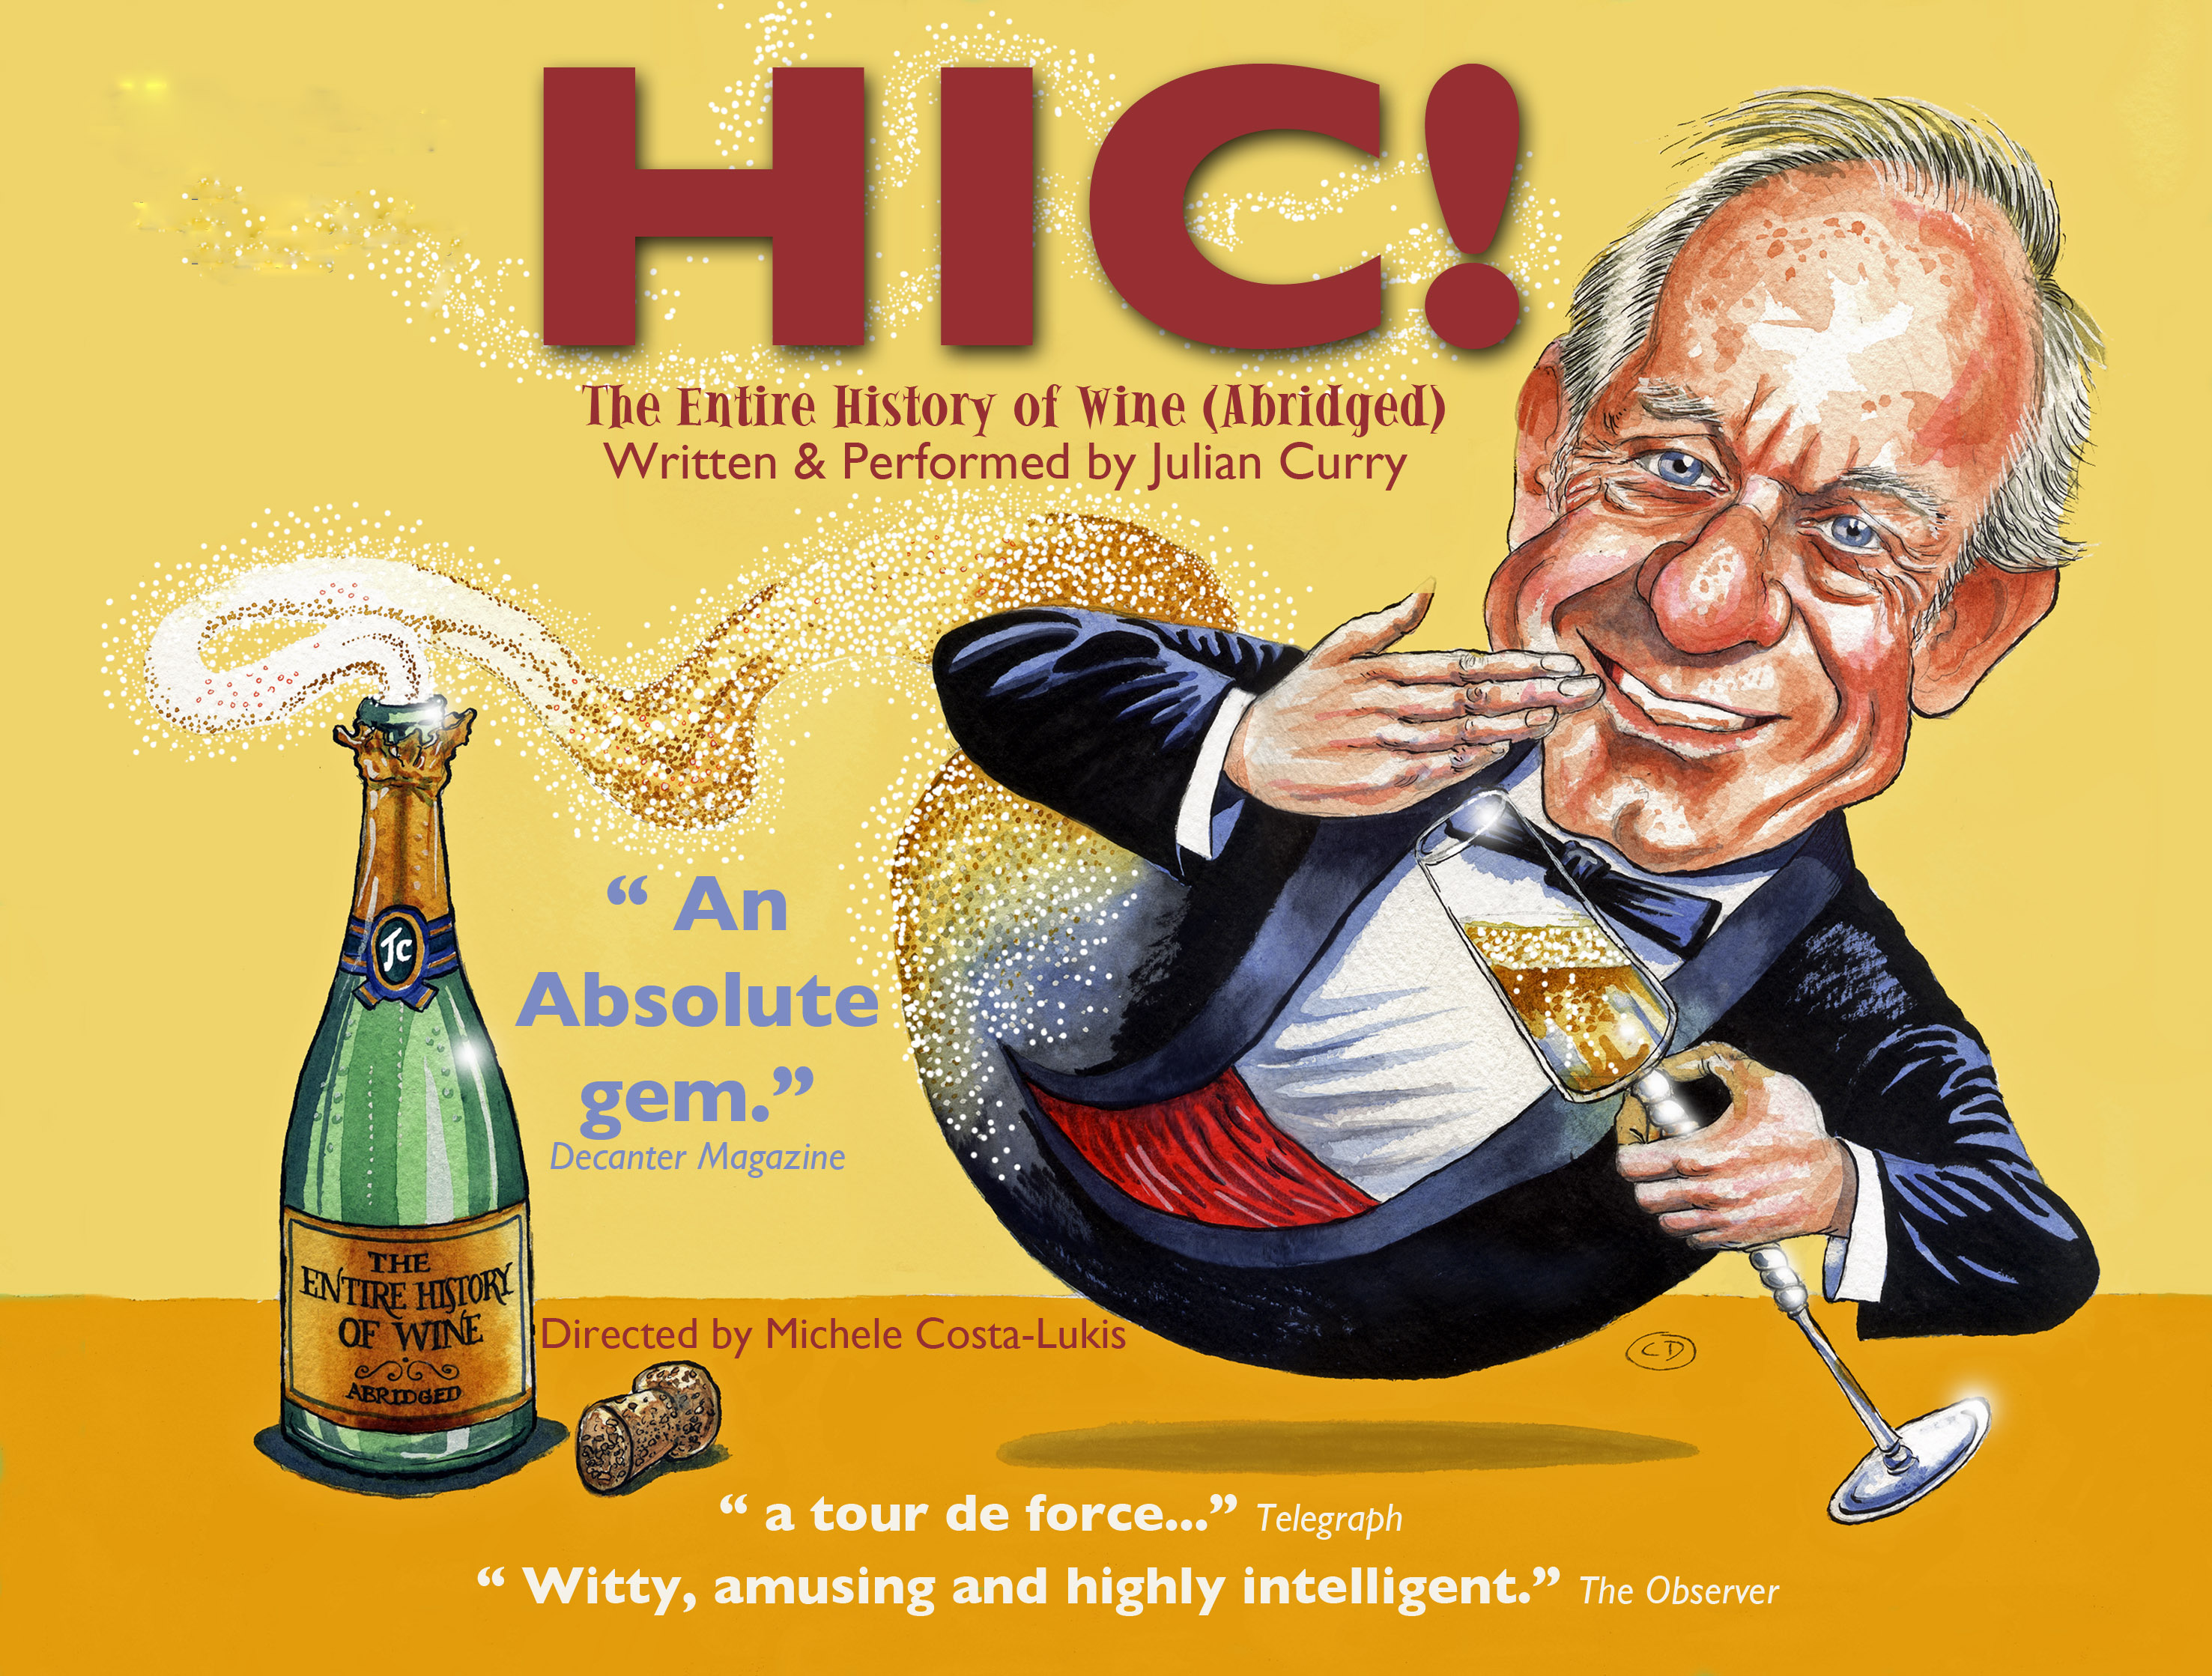 HIC! or The Entire History of Wine (abridged)